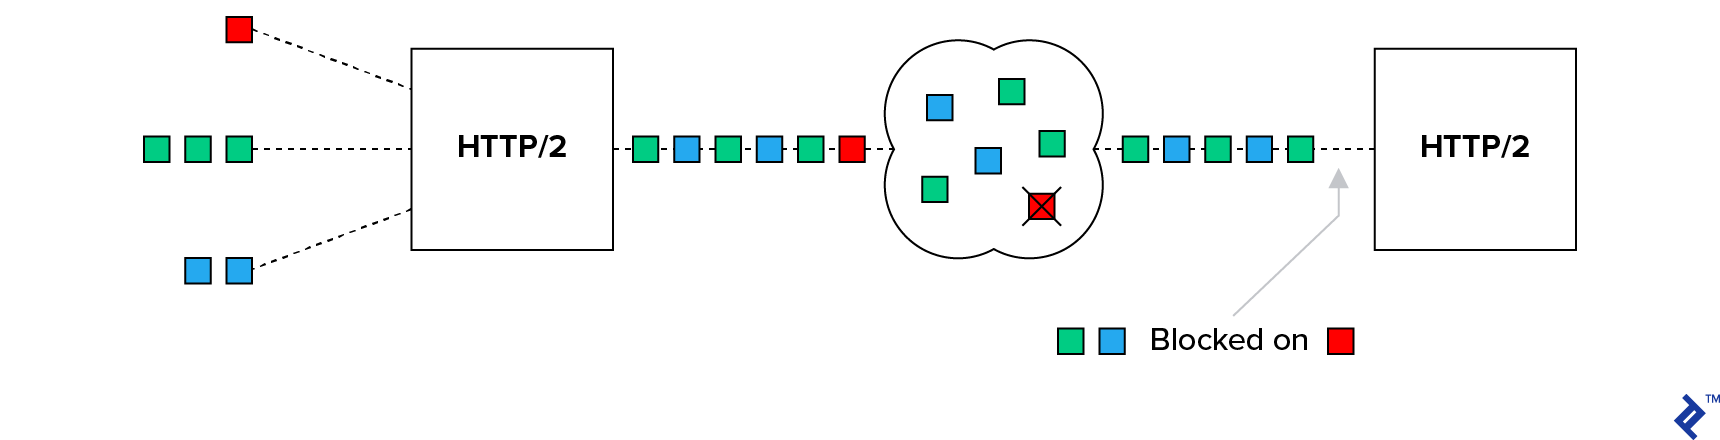 TCP HOL blocking over an HTTP/2 connection. One red and several green and blue packets are being sent, but the one red packet is lost, causing blockage for the green and blue packets.